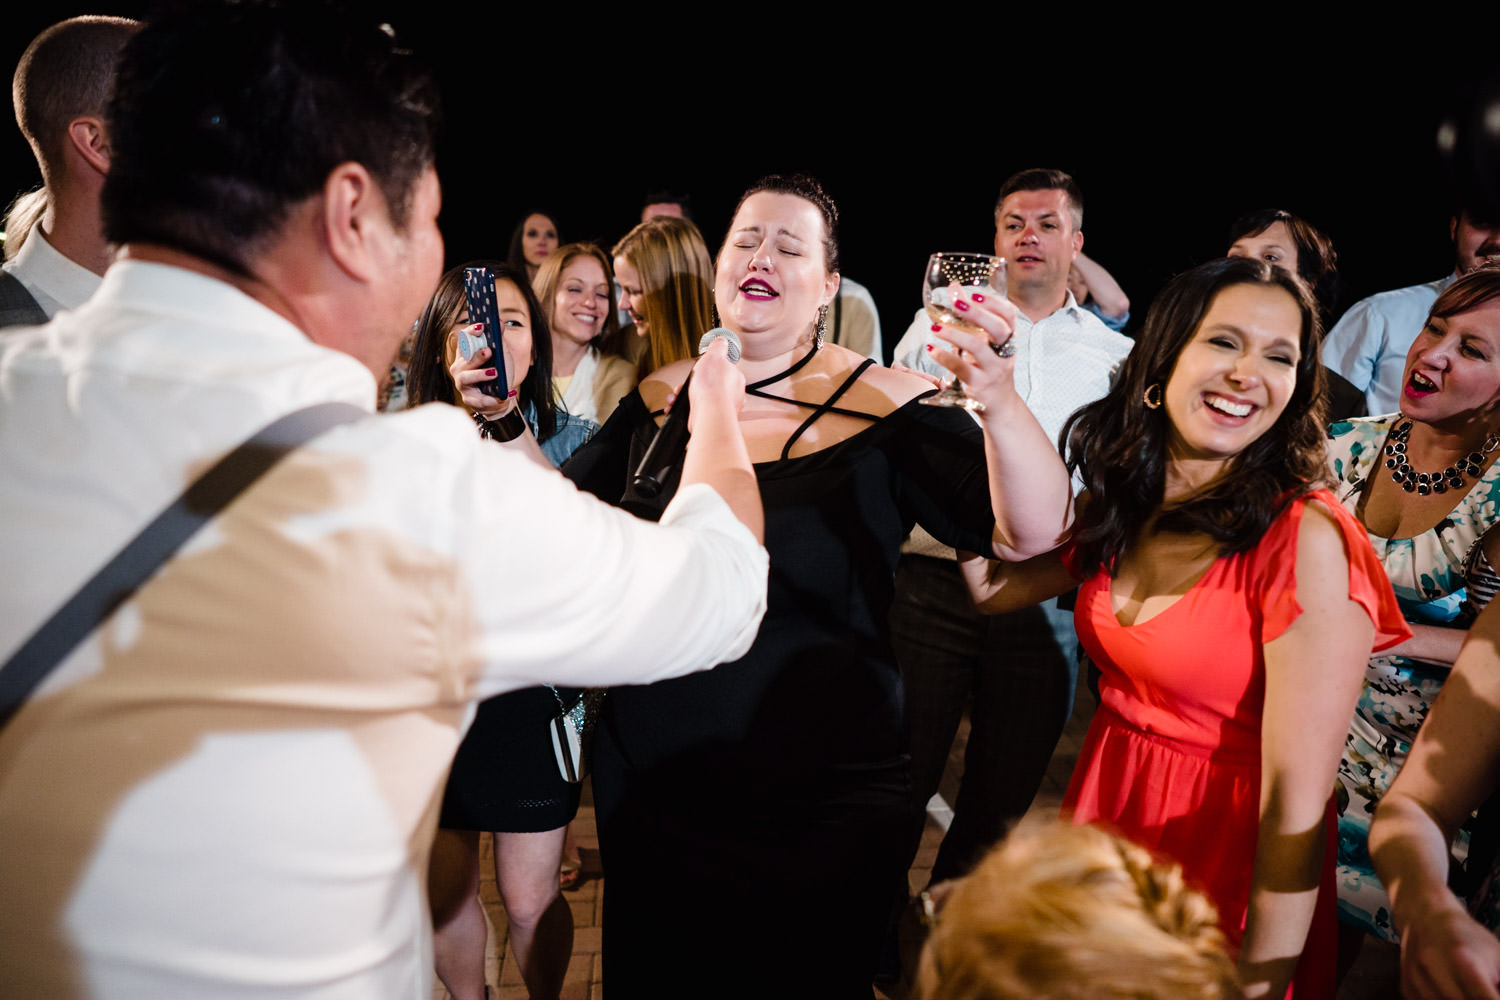 Alta Lodge wedding guests singing with microphone photo